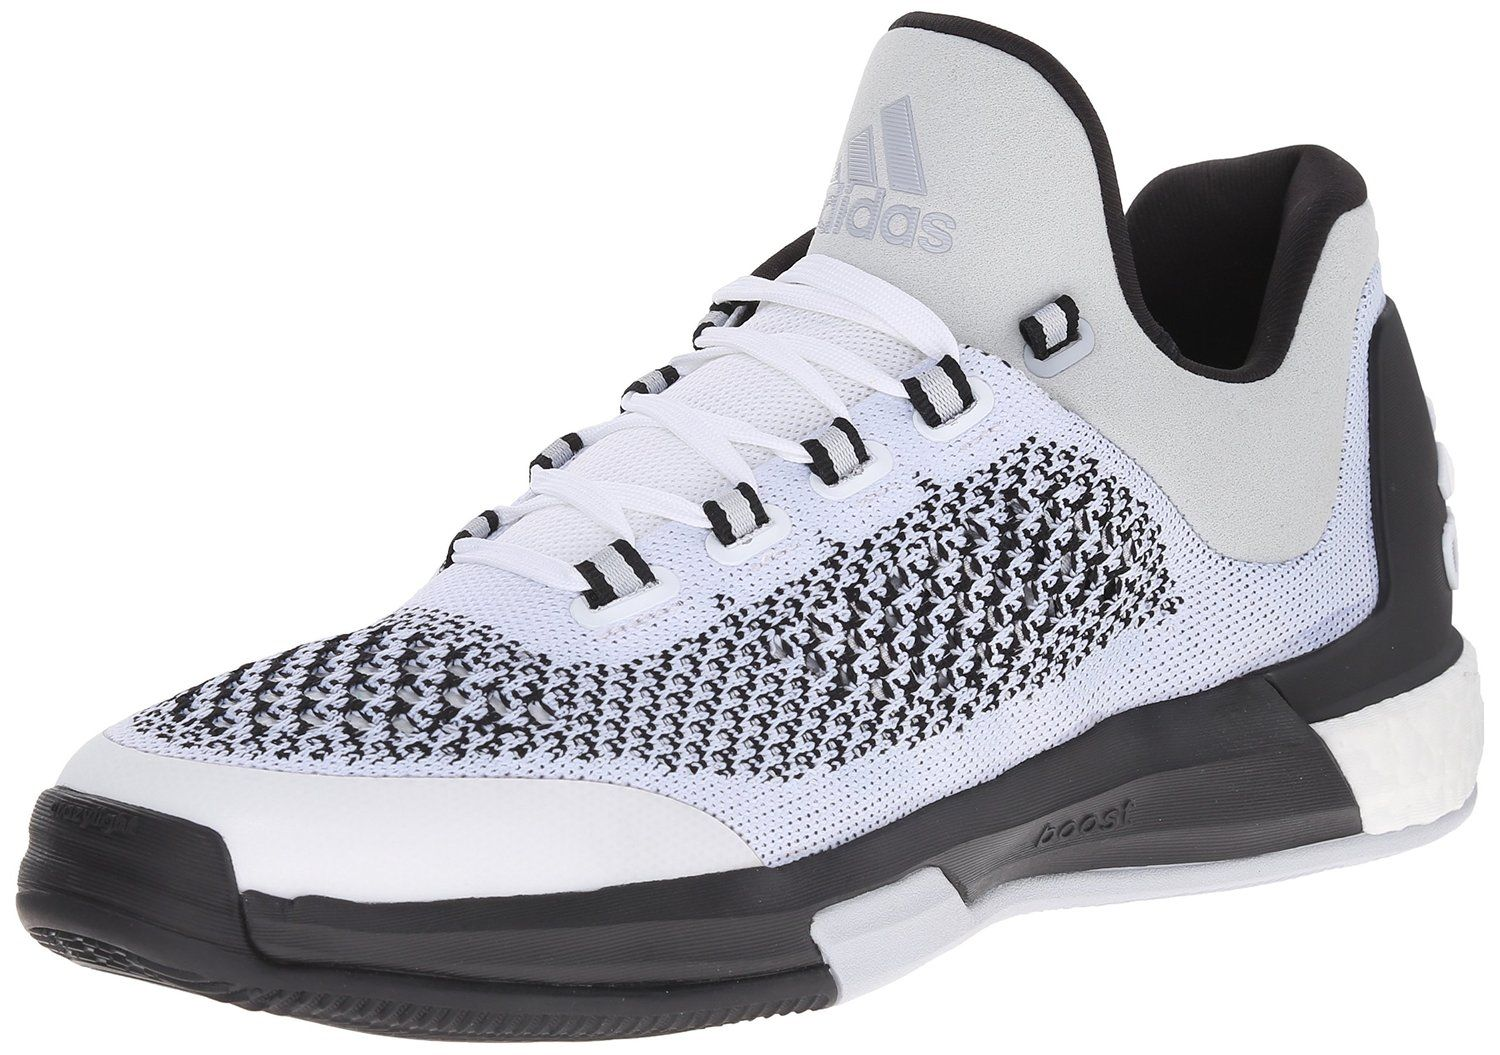 Pin by Julius on Basketball Shoe Reviews | Shoe releases